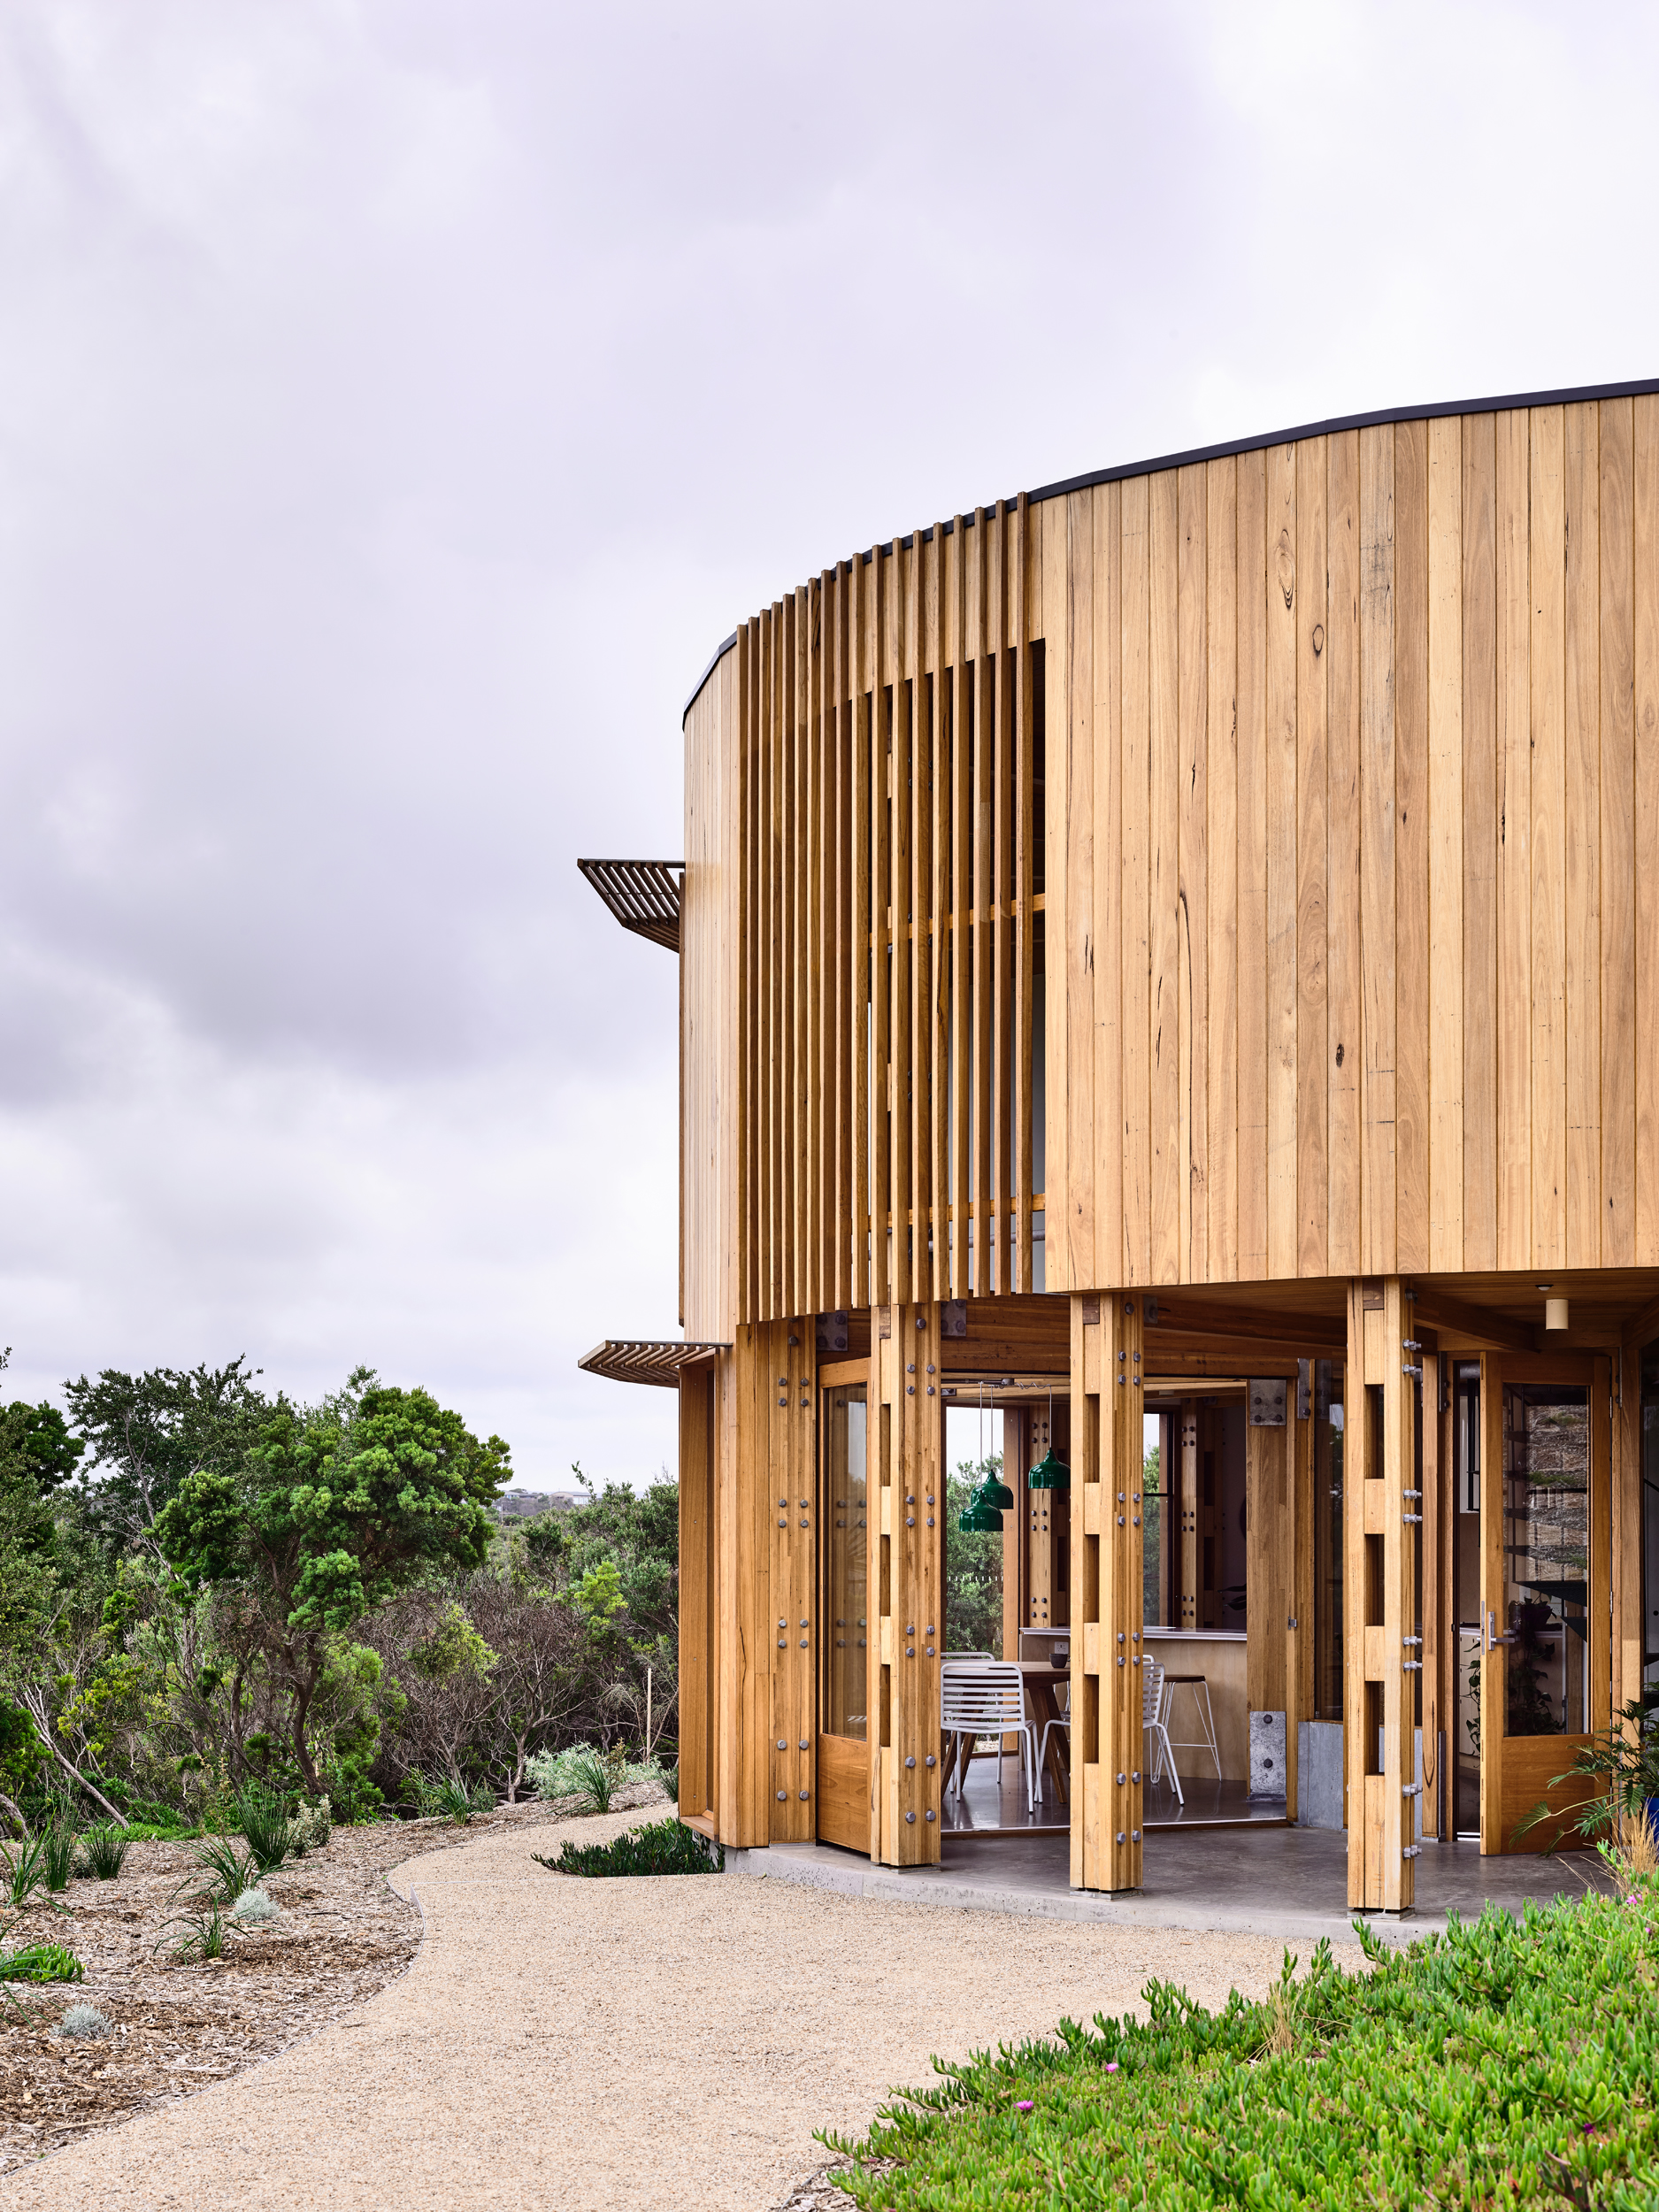 St Andrews Beach House austin maynard architects | Collater.al